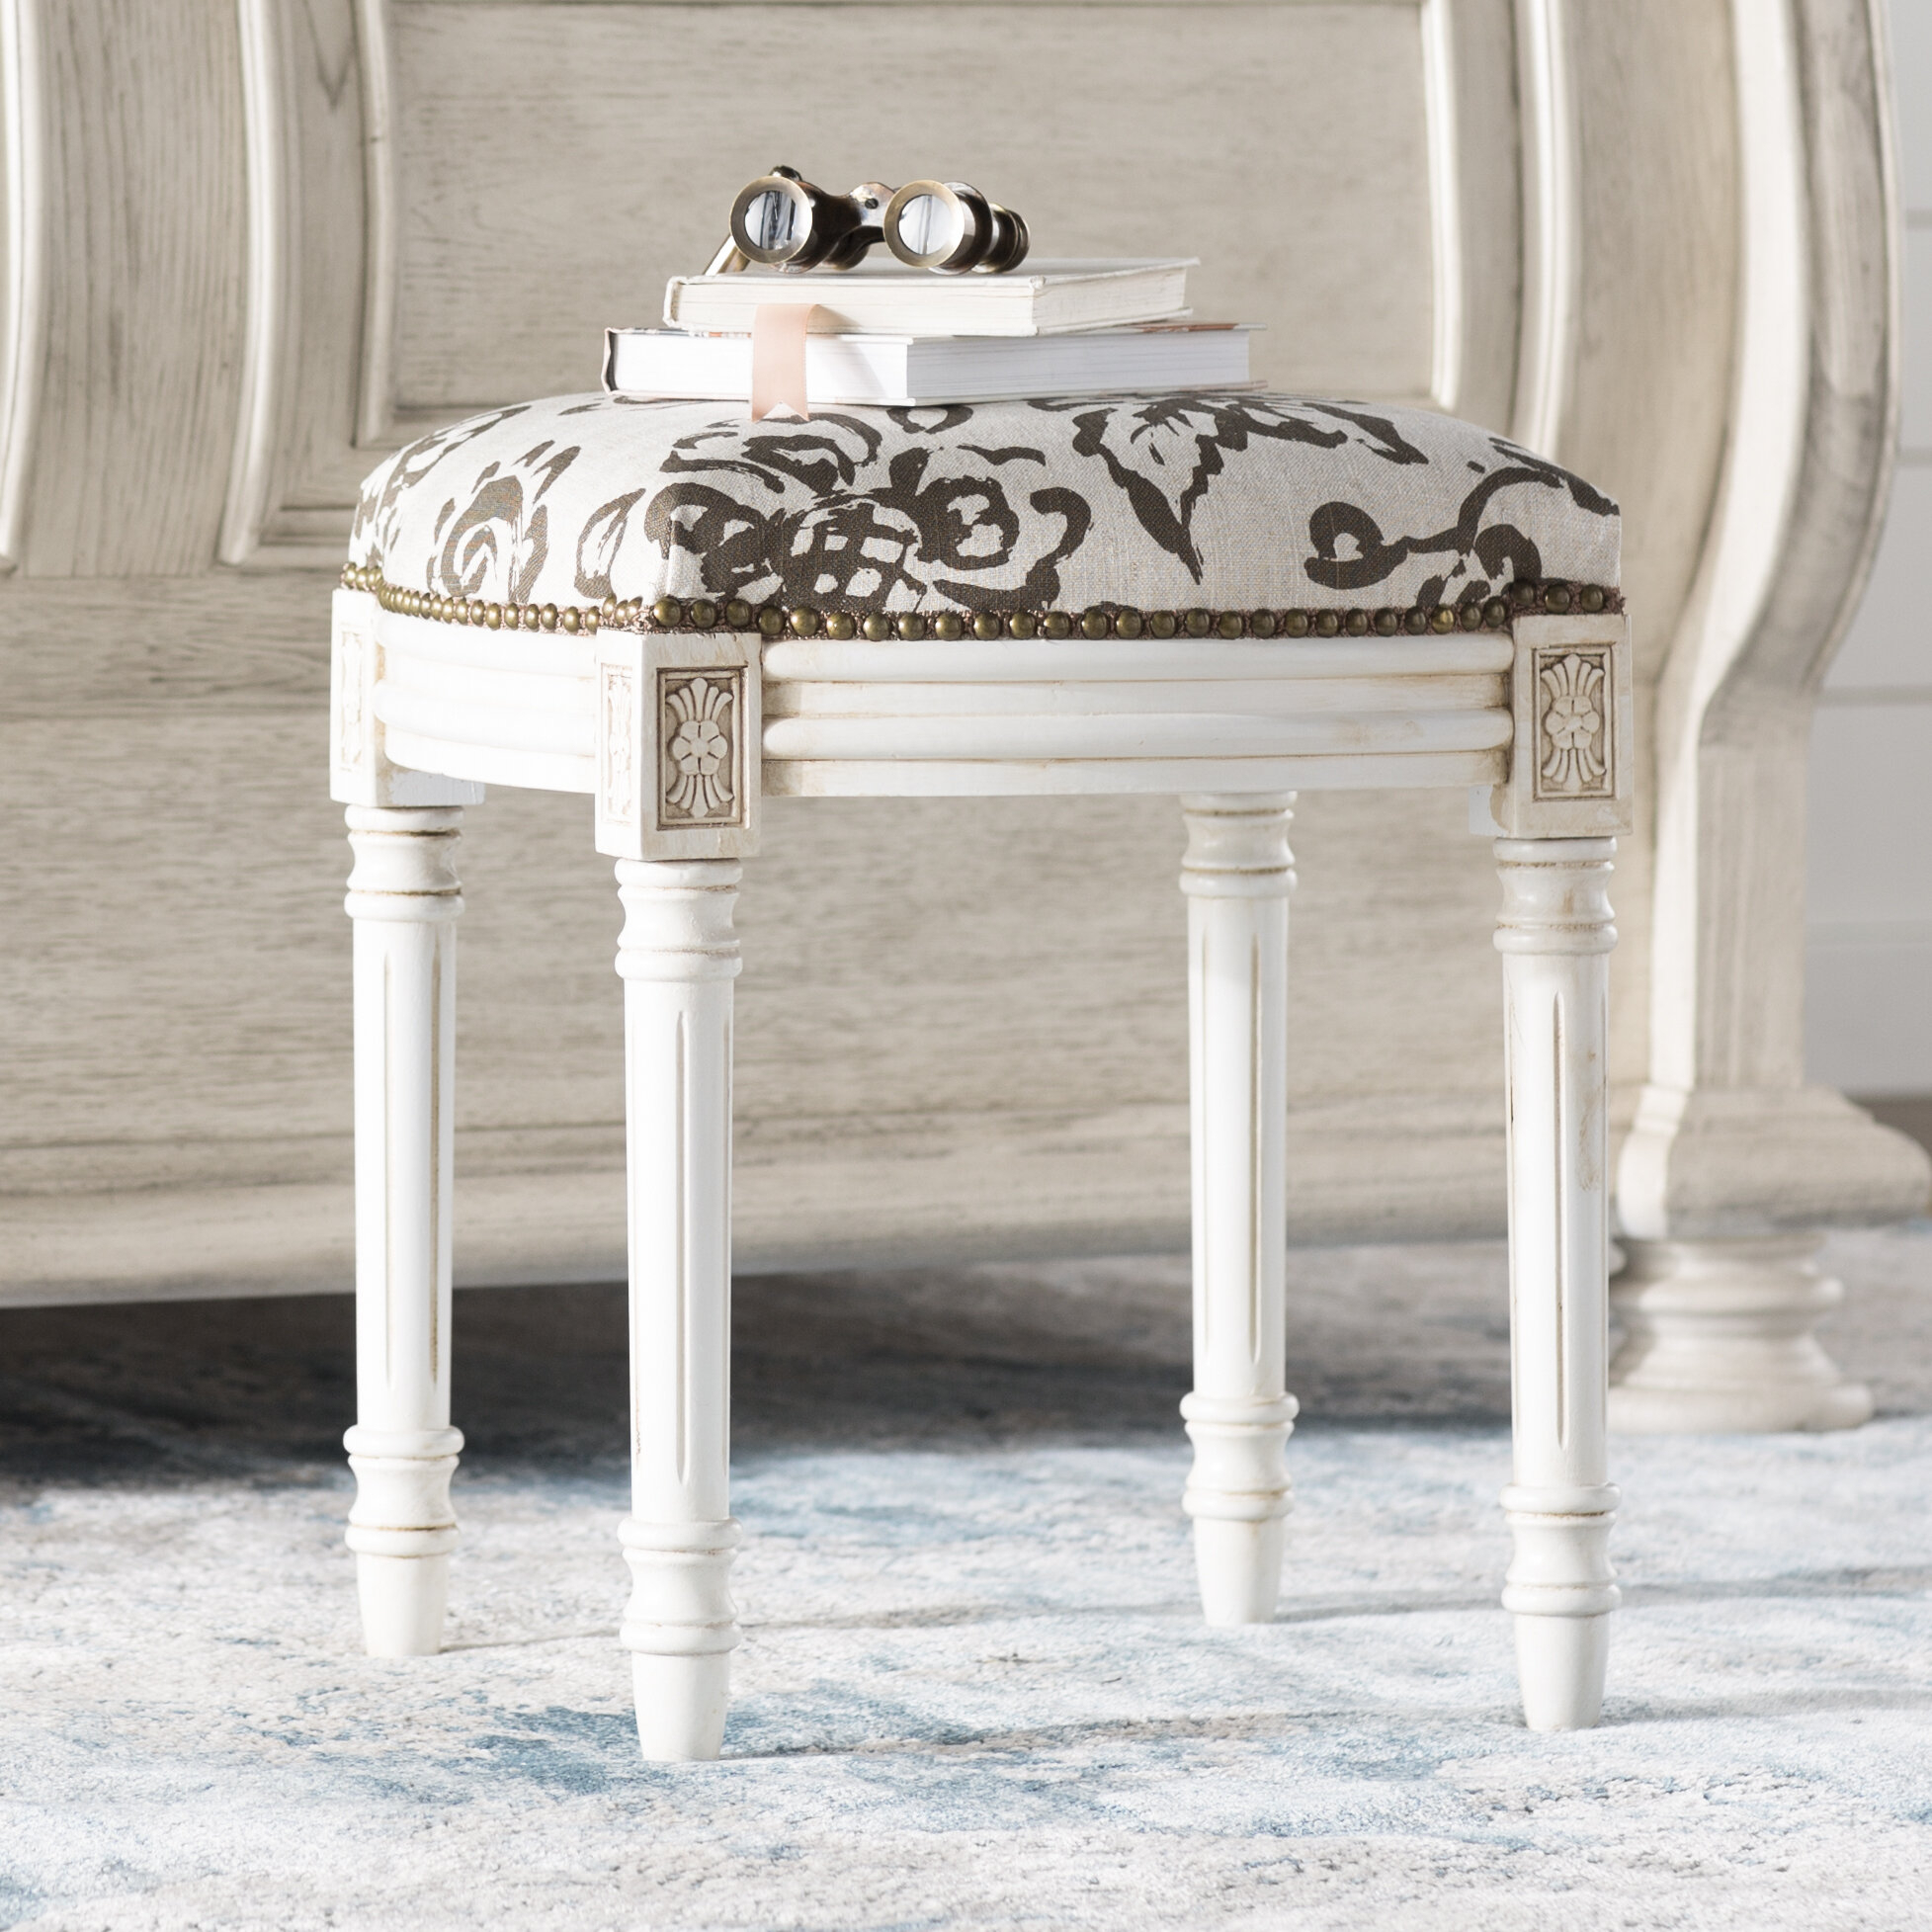 Floral Accent Stools You'Ll Love In 2020 | Wayfair Inside Irwin Blossom Garden Stools (View 23 of 25)